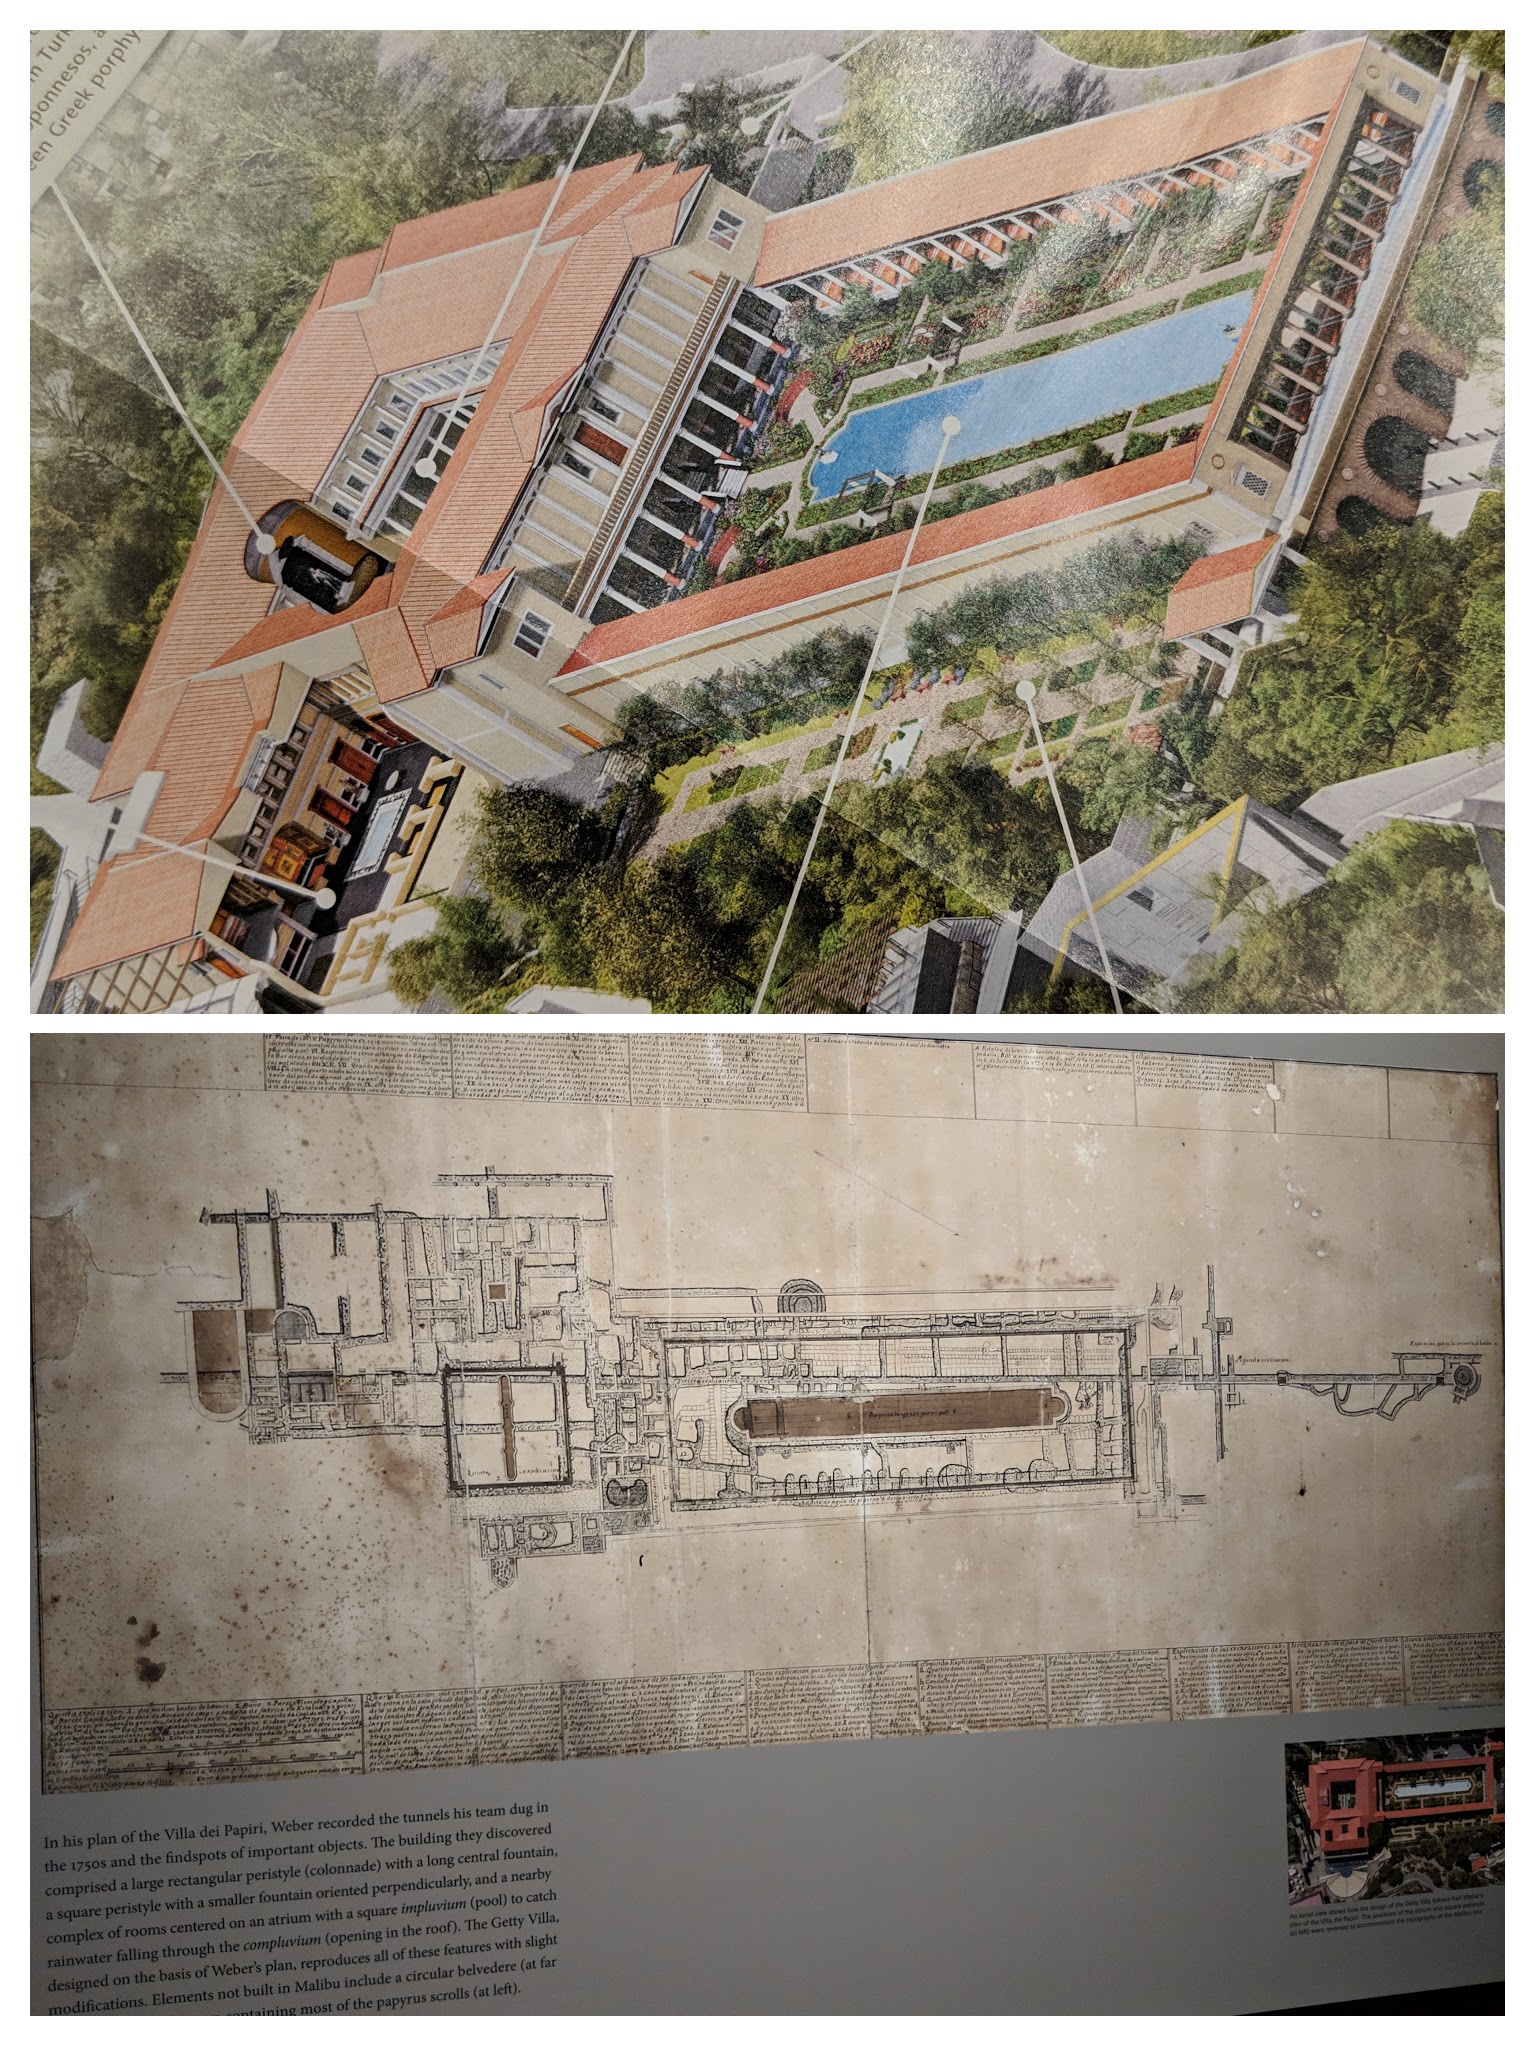 Seniorenausflug – Die Getty Villa